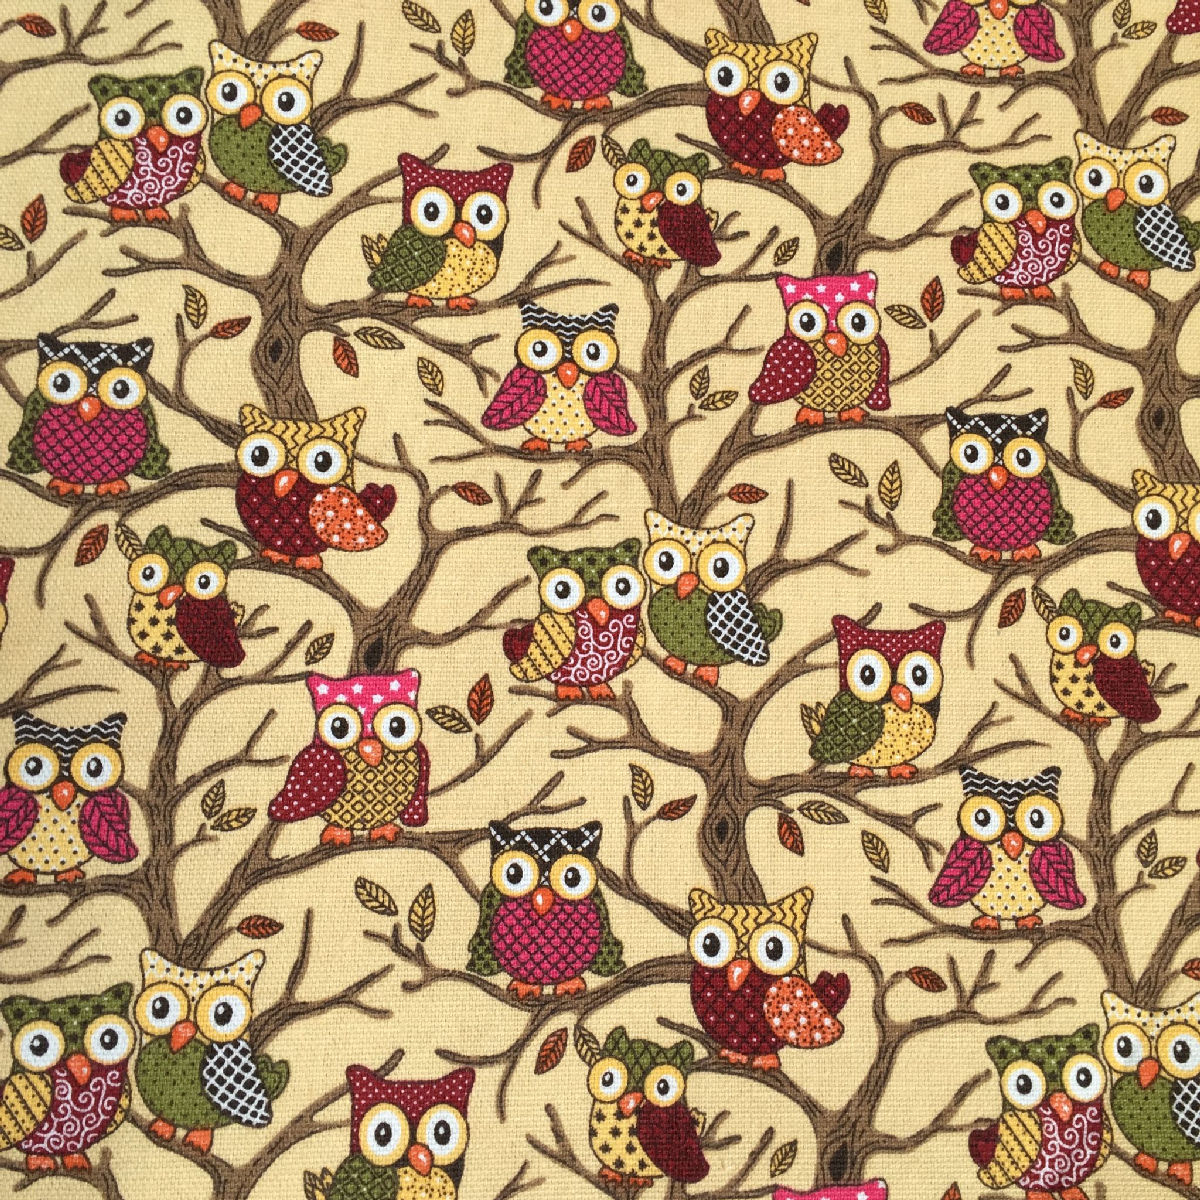 Owls Forest Owls Beige Canvas Fabric Material Medium